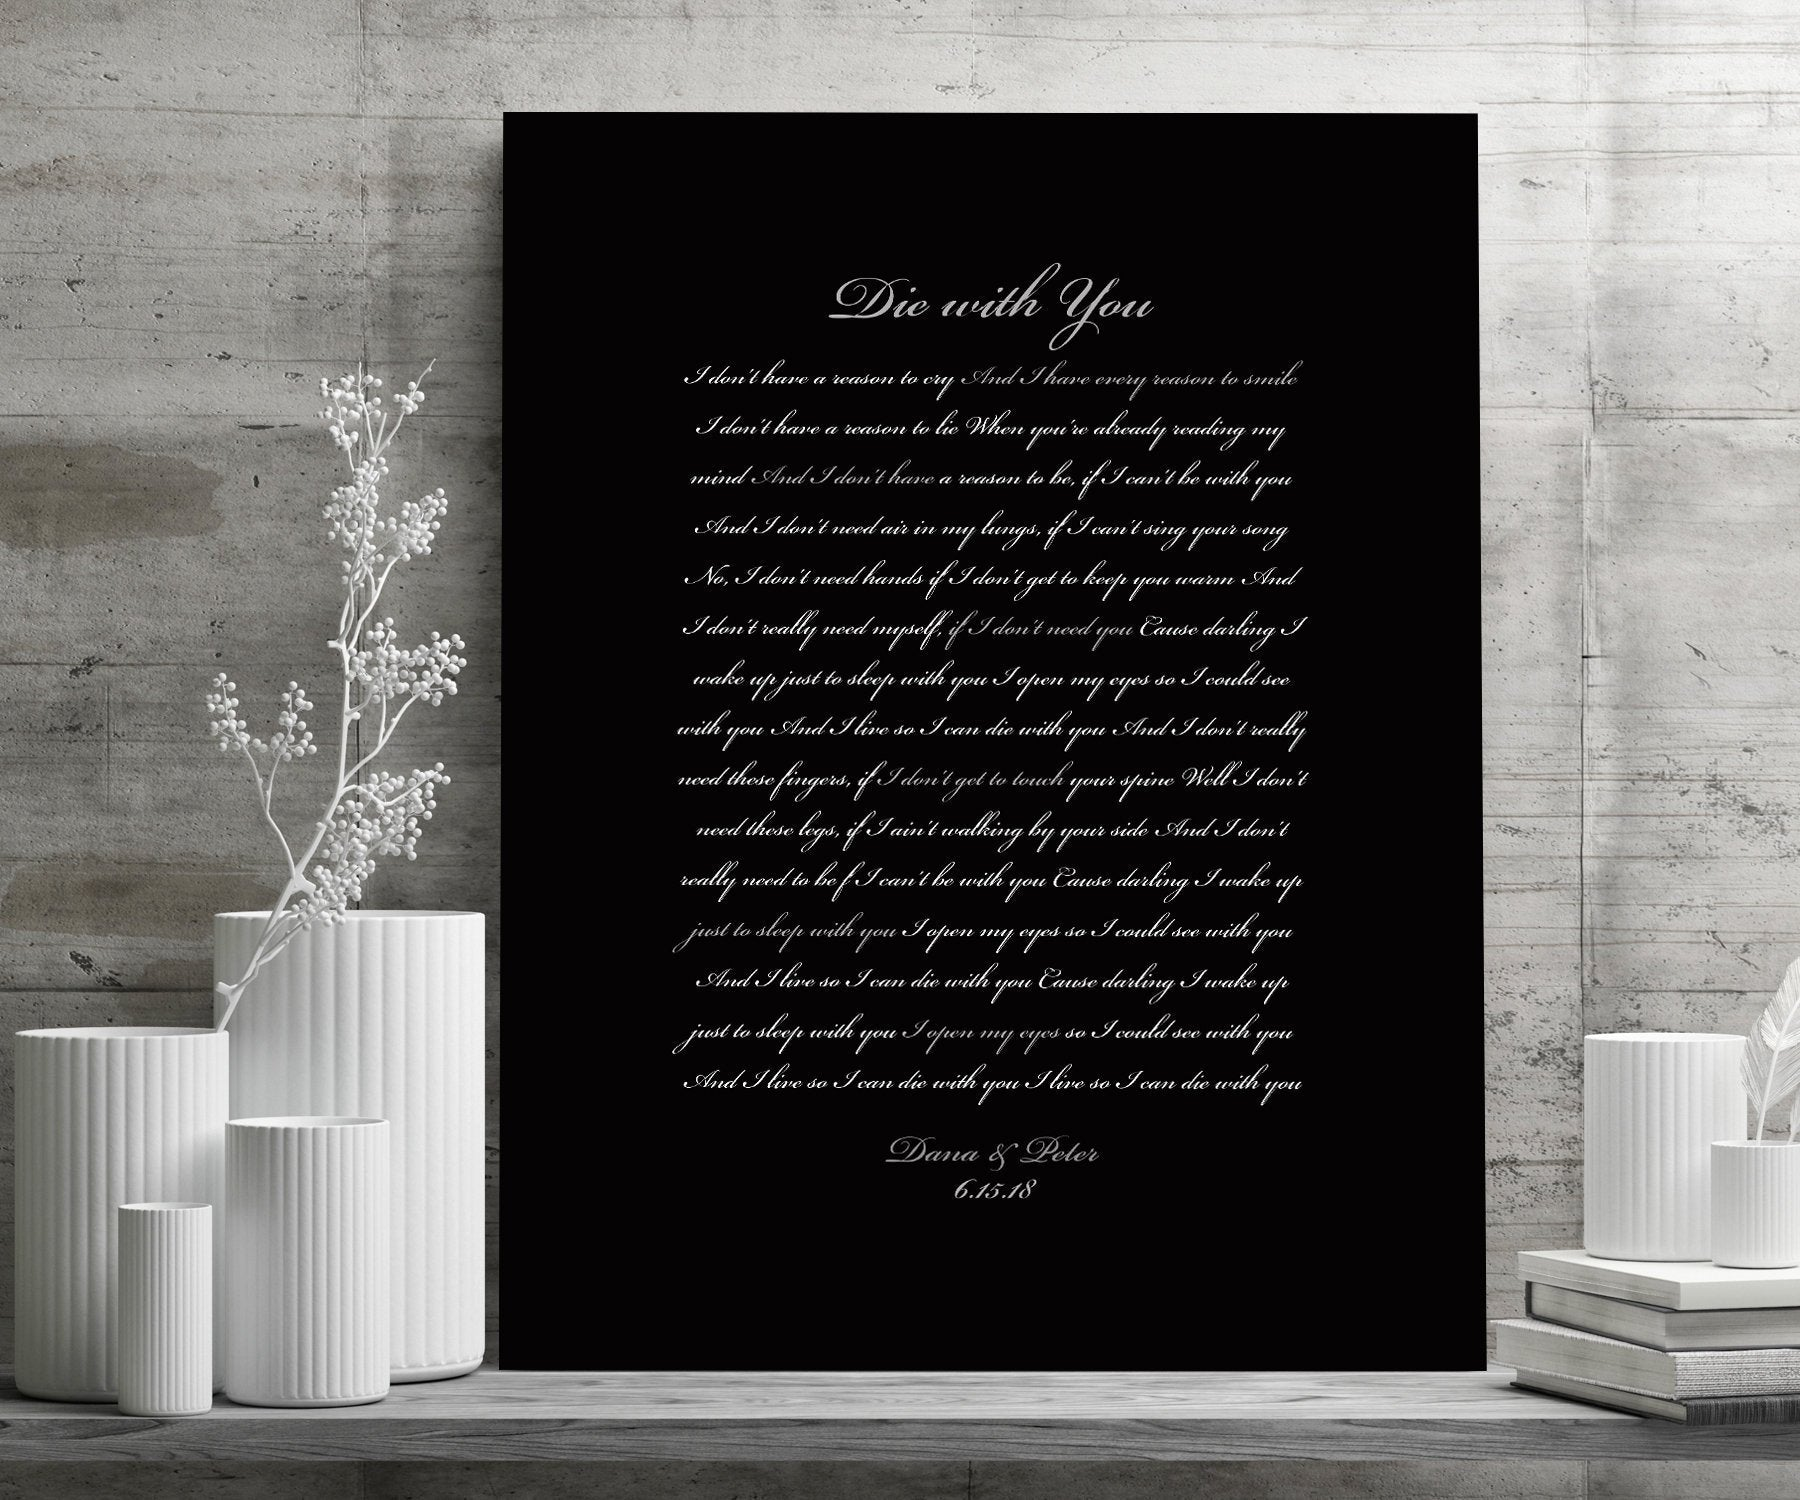 Canvas Song Print, Custom Bedroom Decor, Wife anniversary gift, Romantic Bedroom Wall decor, His and Her Personalize, Wedding Date Print